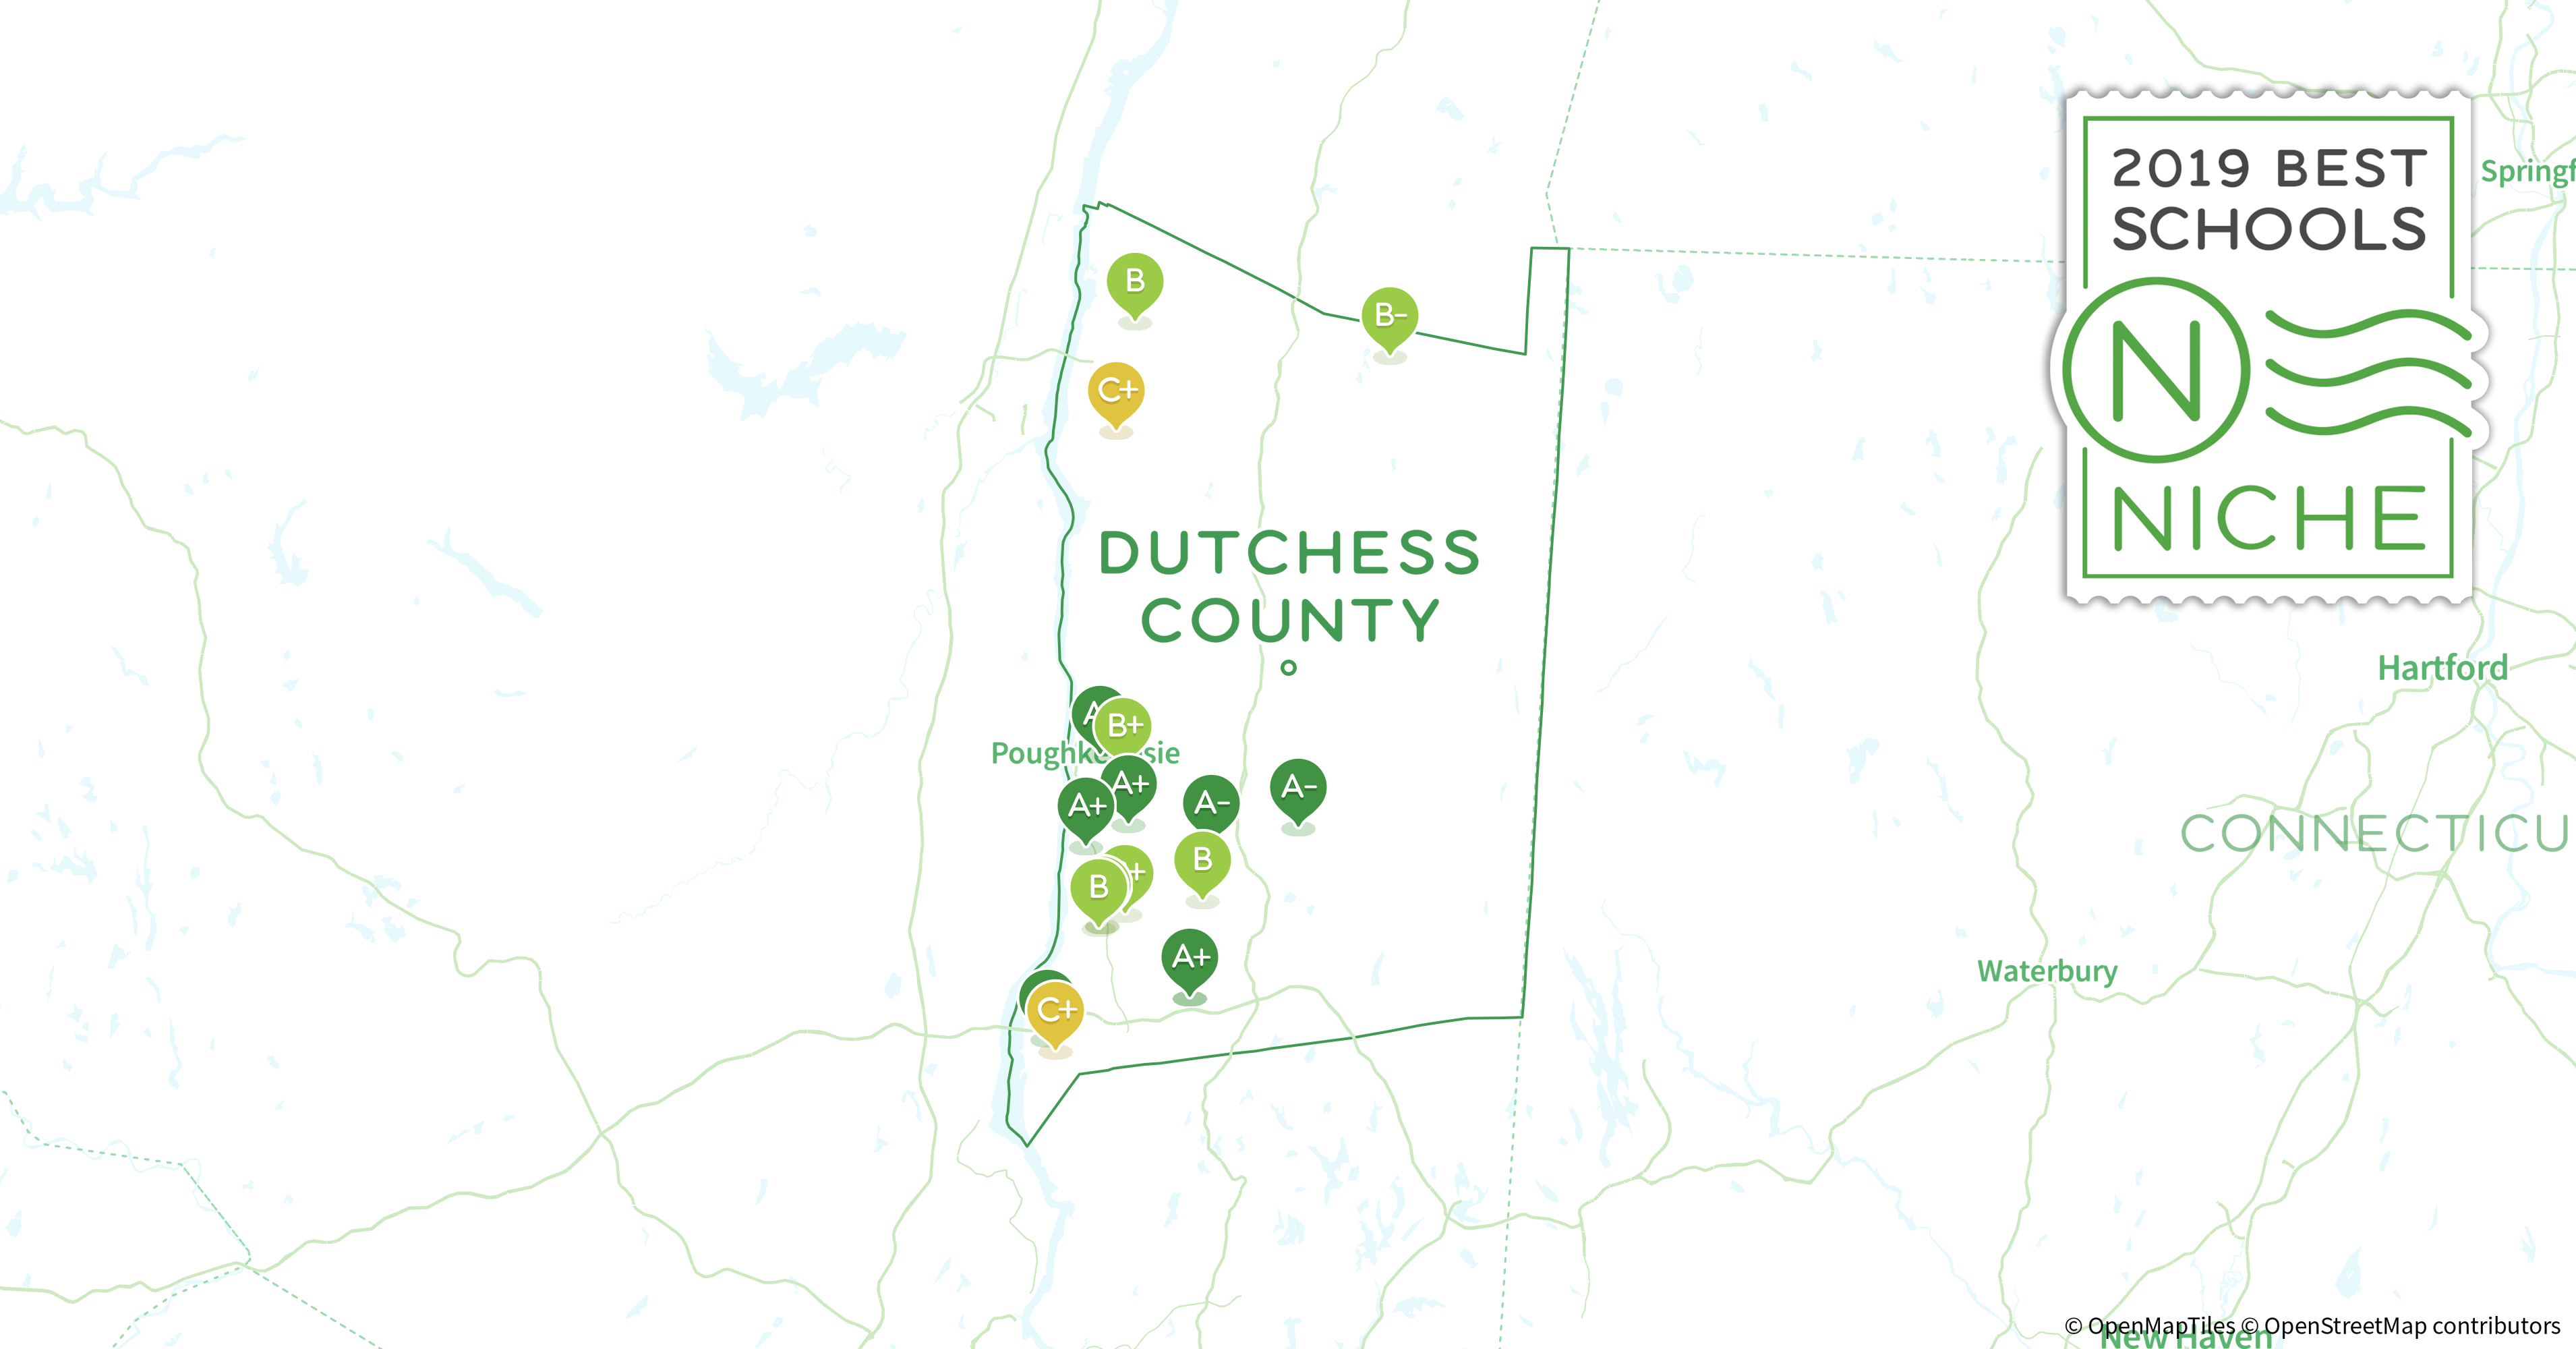 2019 Best Public Elementary s in Dutchess County, NY - Niche Dutchess County Map on